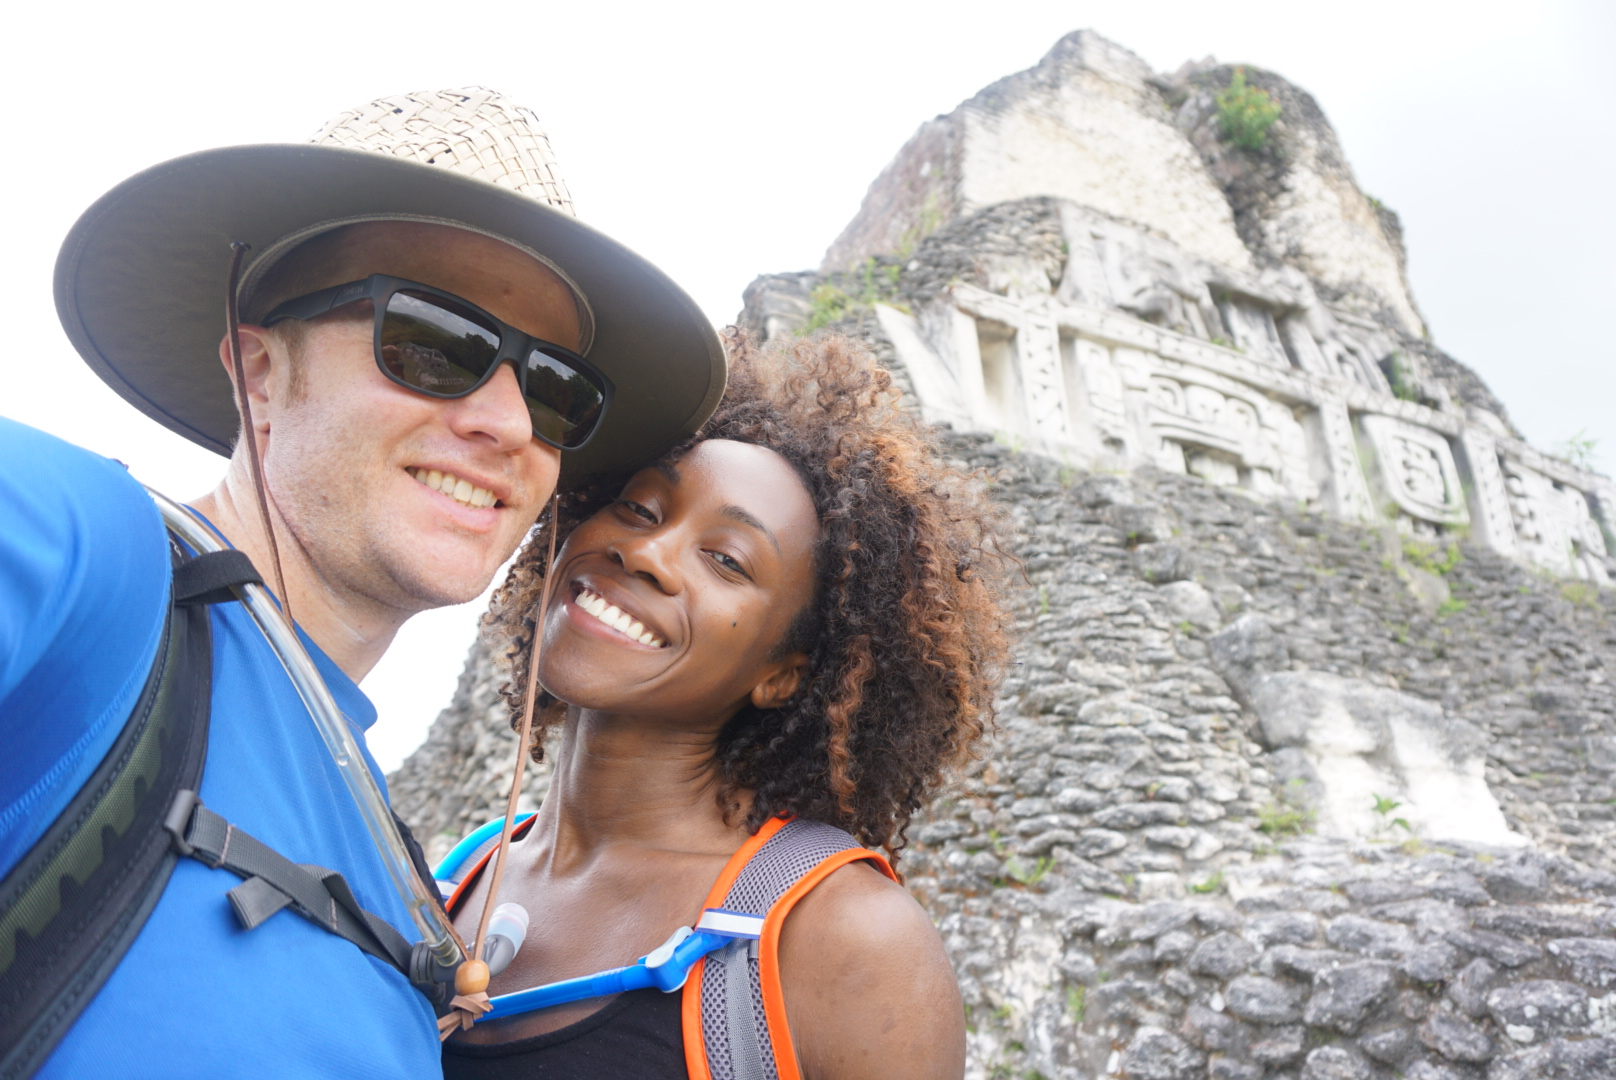 Our next activity was hiking through Mayan temples. Absolutely breathtaking.